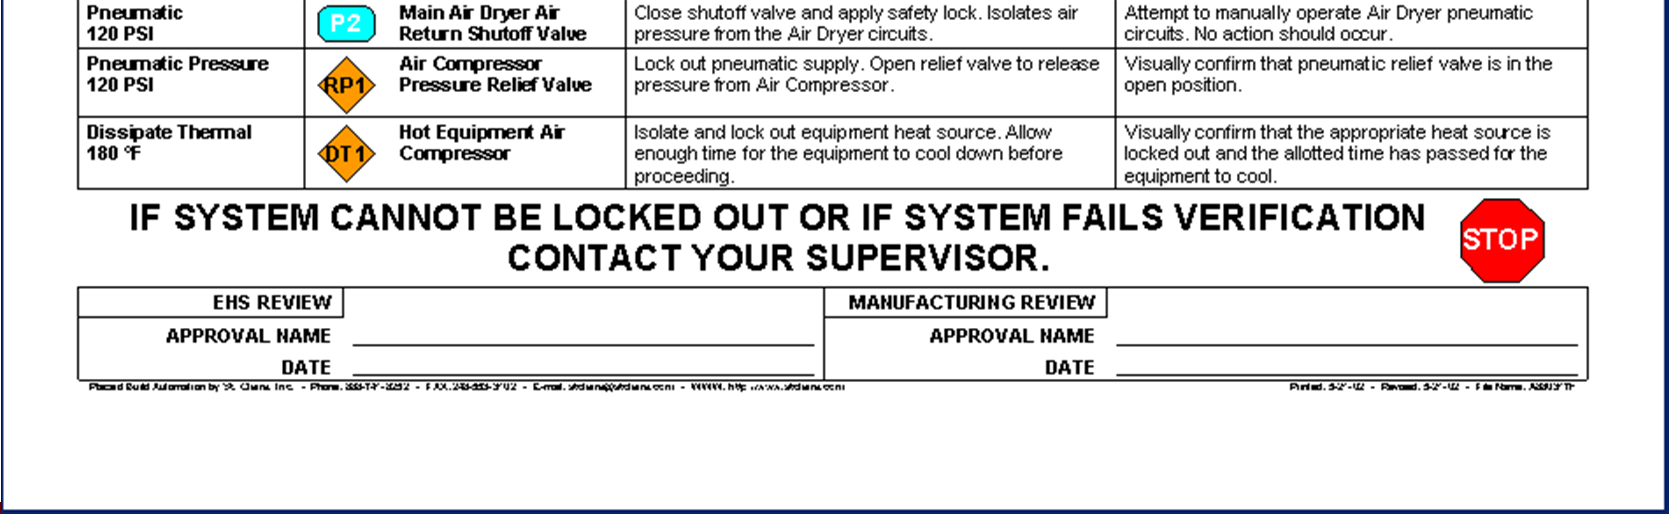 General Electric Company Master Lockout Tagout Loto Program